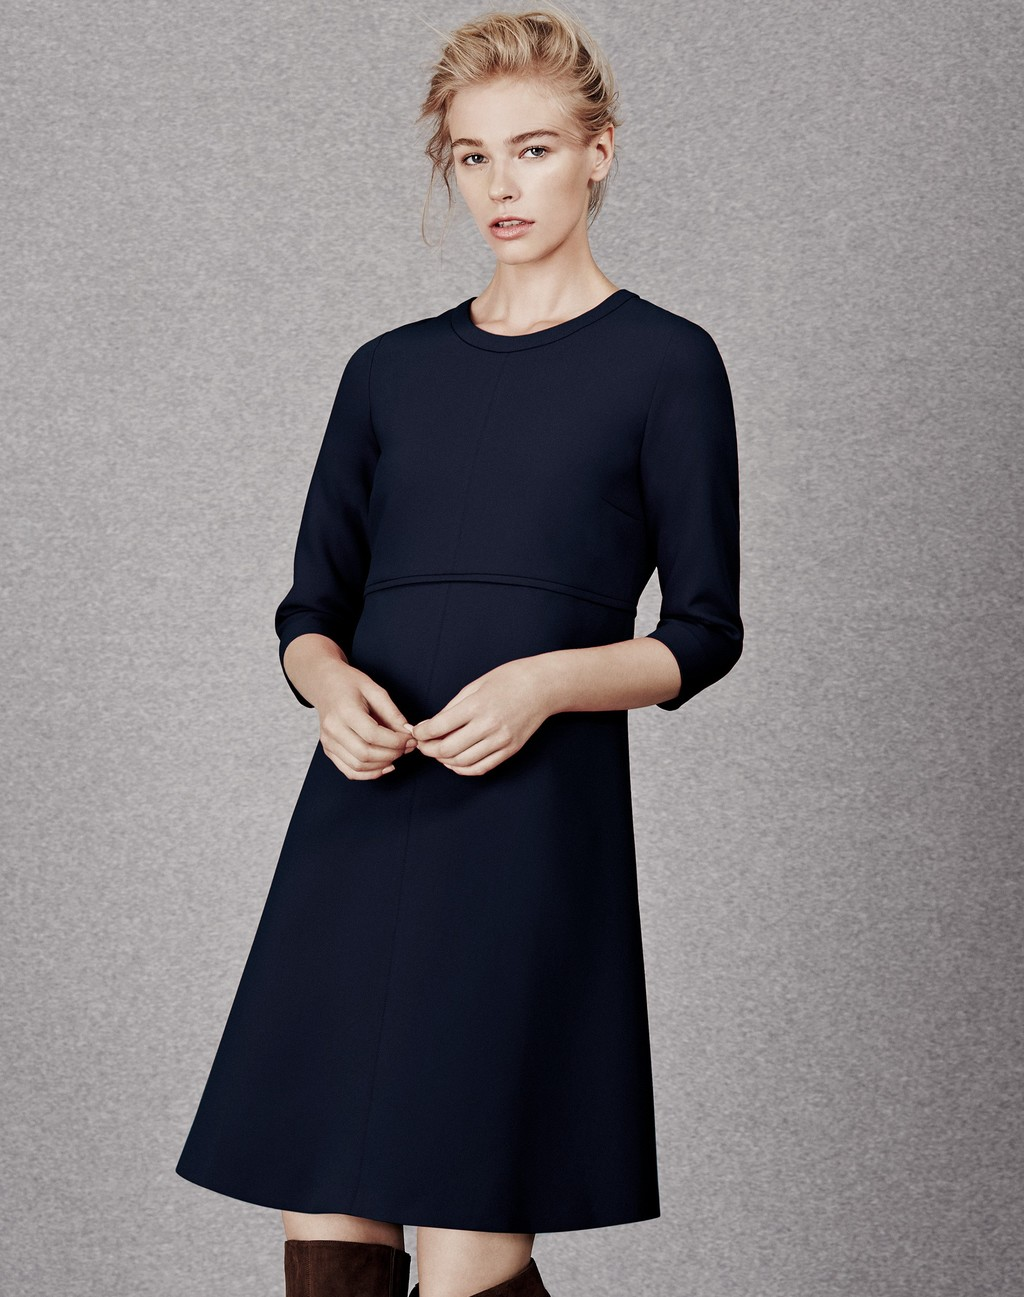 Tailored A Line Dress Navy - style: shift; pattern: plain; predominant colour: navy; occasions: work, creative work; length: just above the knee; fit: soft a-line; fibres: polyester/polyamide - 100%; neckline: crew; sleeve length: 3/4 length; sleeve style: standard; texture group: crepes; pattern type: fabric; season: a/w 2015; wardrobe: investment